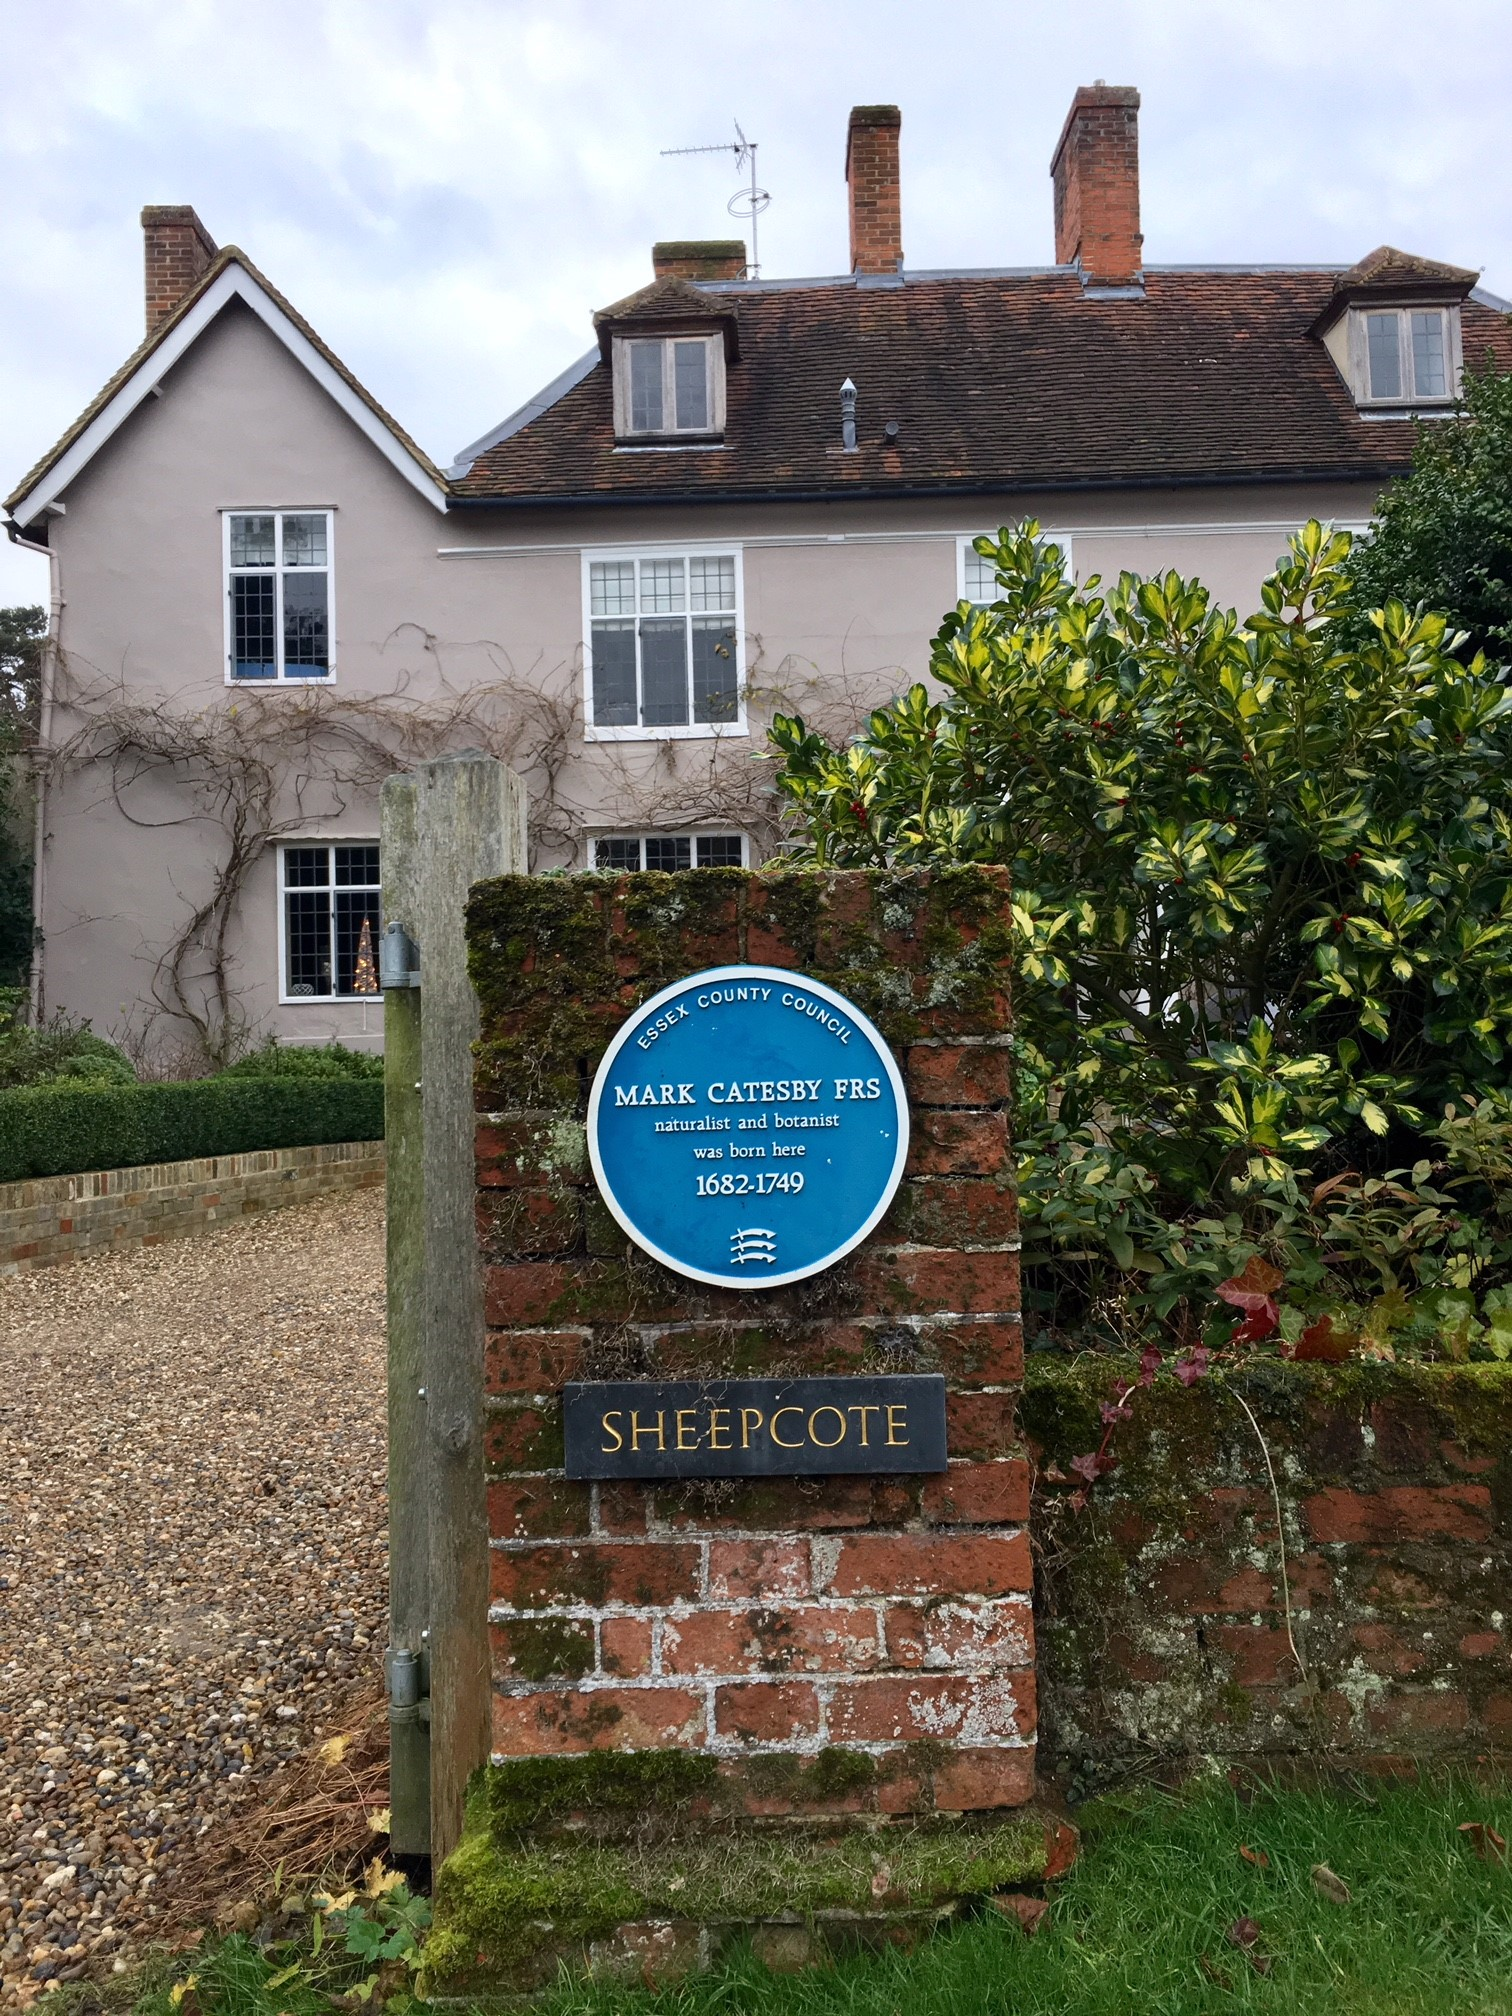 Mark Catesby's birthplace in Castle Hedingham, Essex